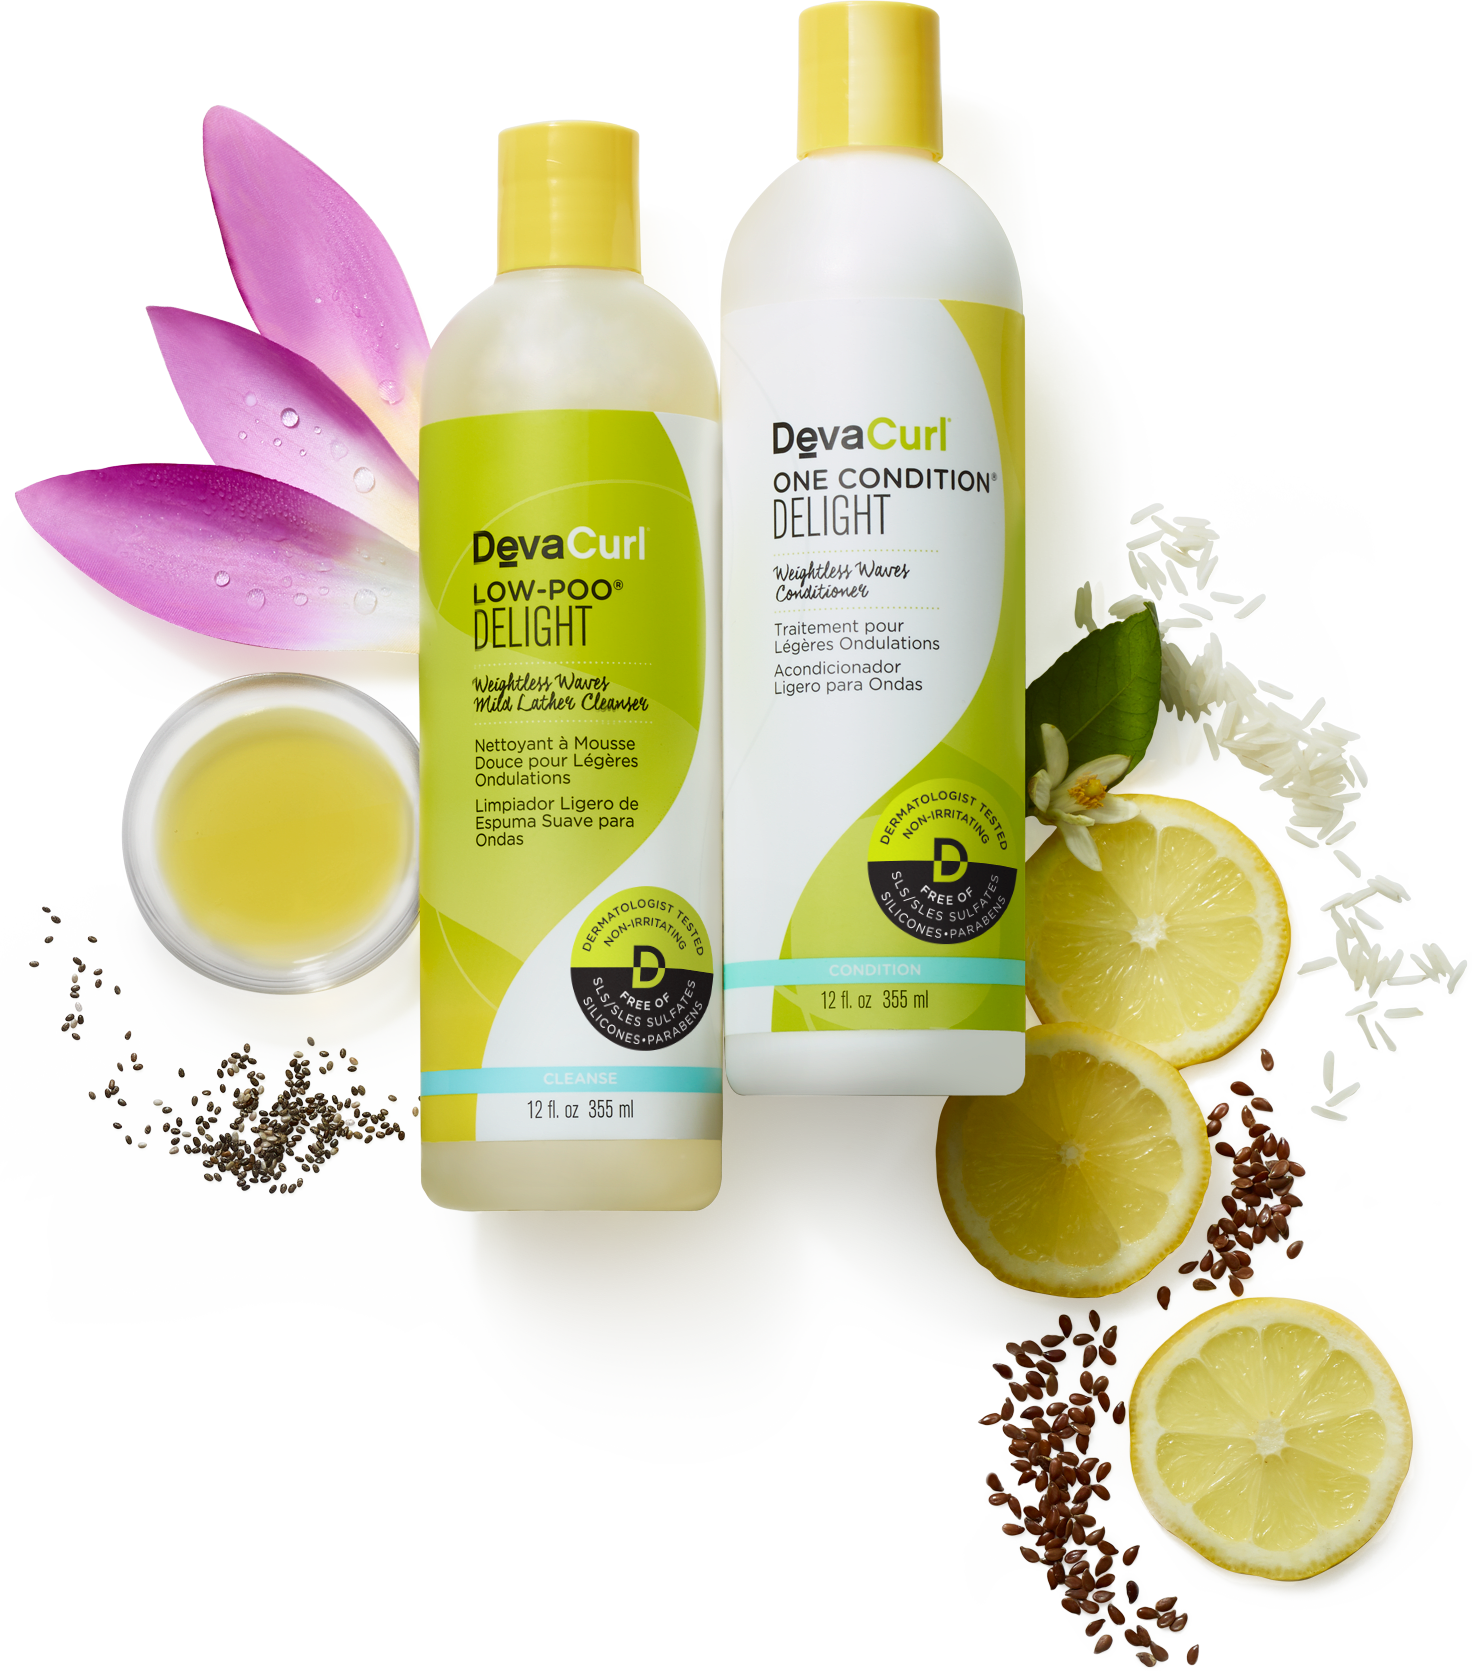 DevaCurl Low-Poo and One Condition Delight bottles with raw ingredients